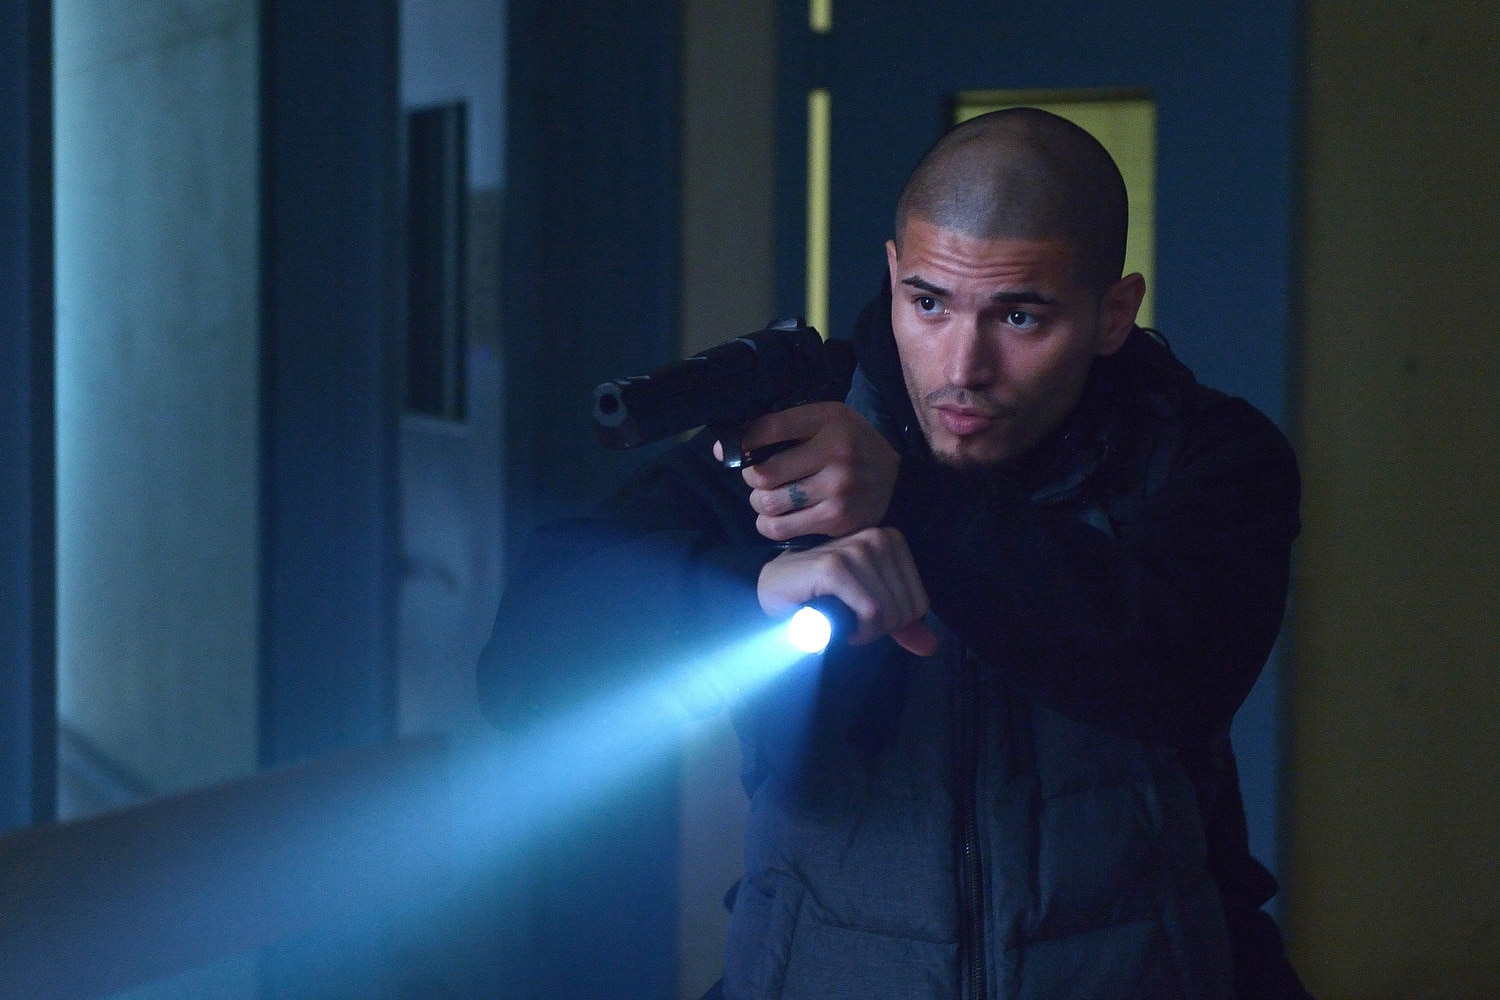 STRAIN 212 0246d hires1 - First-Look Photos and Preview of The Strain Episode 2.12 - Fallen Light